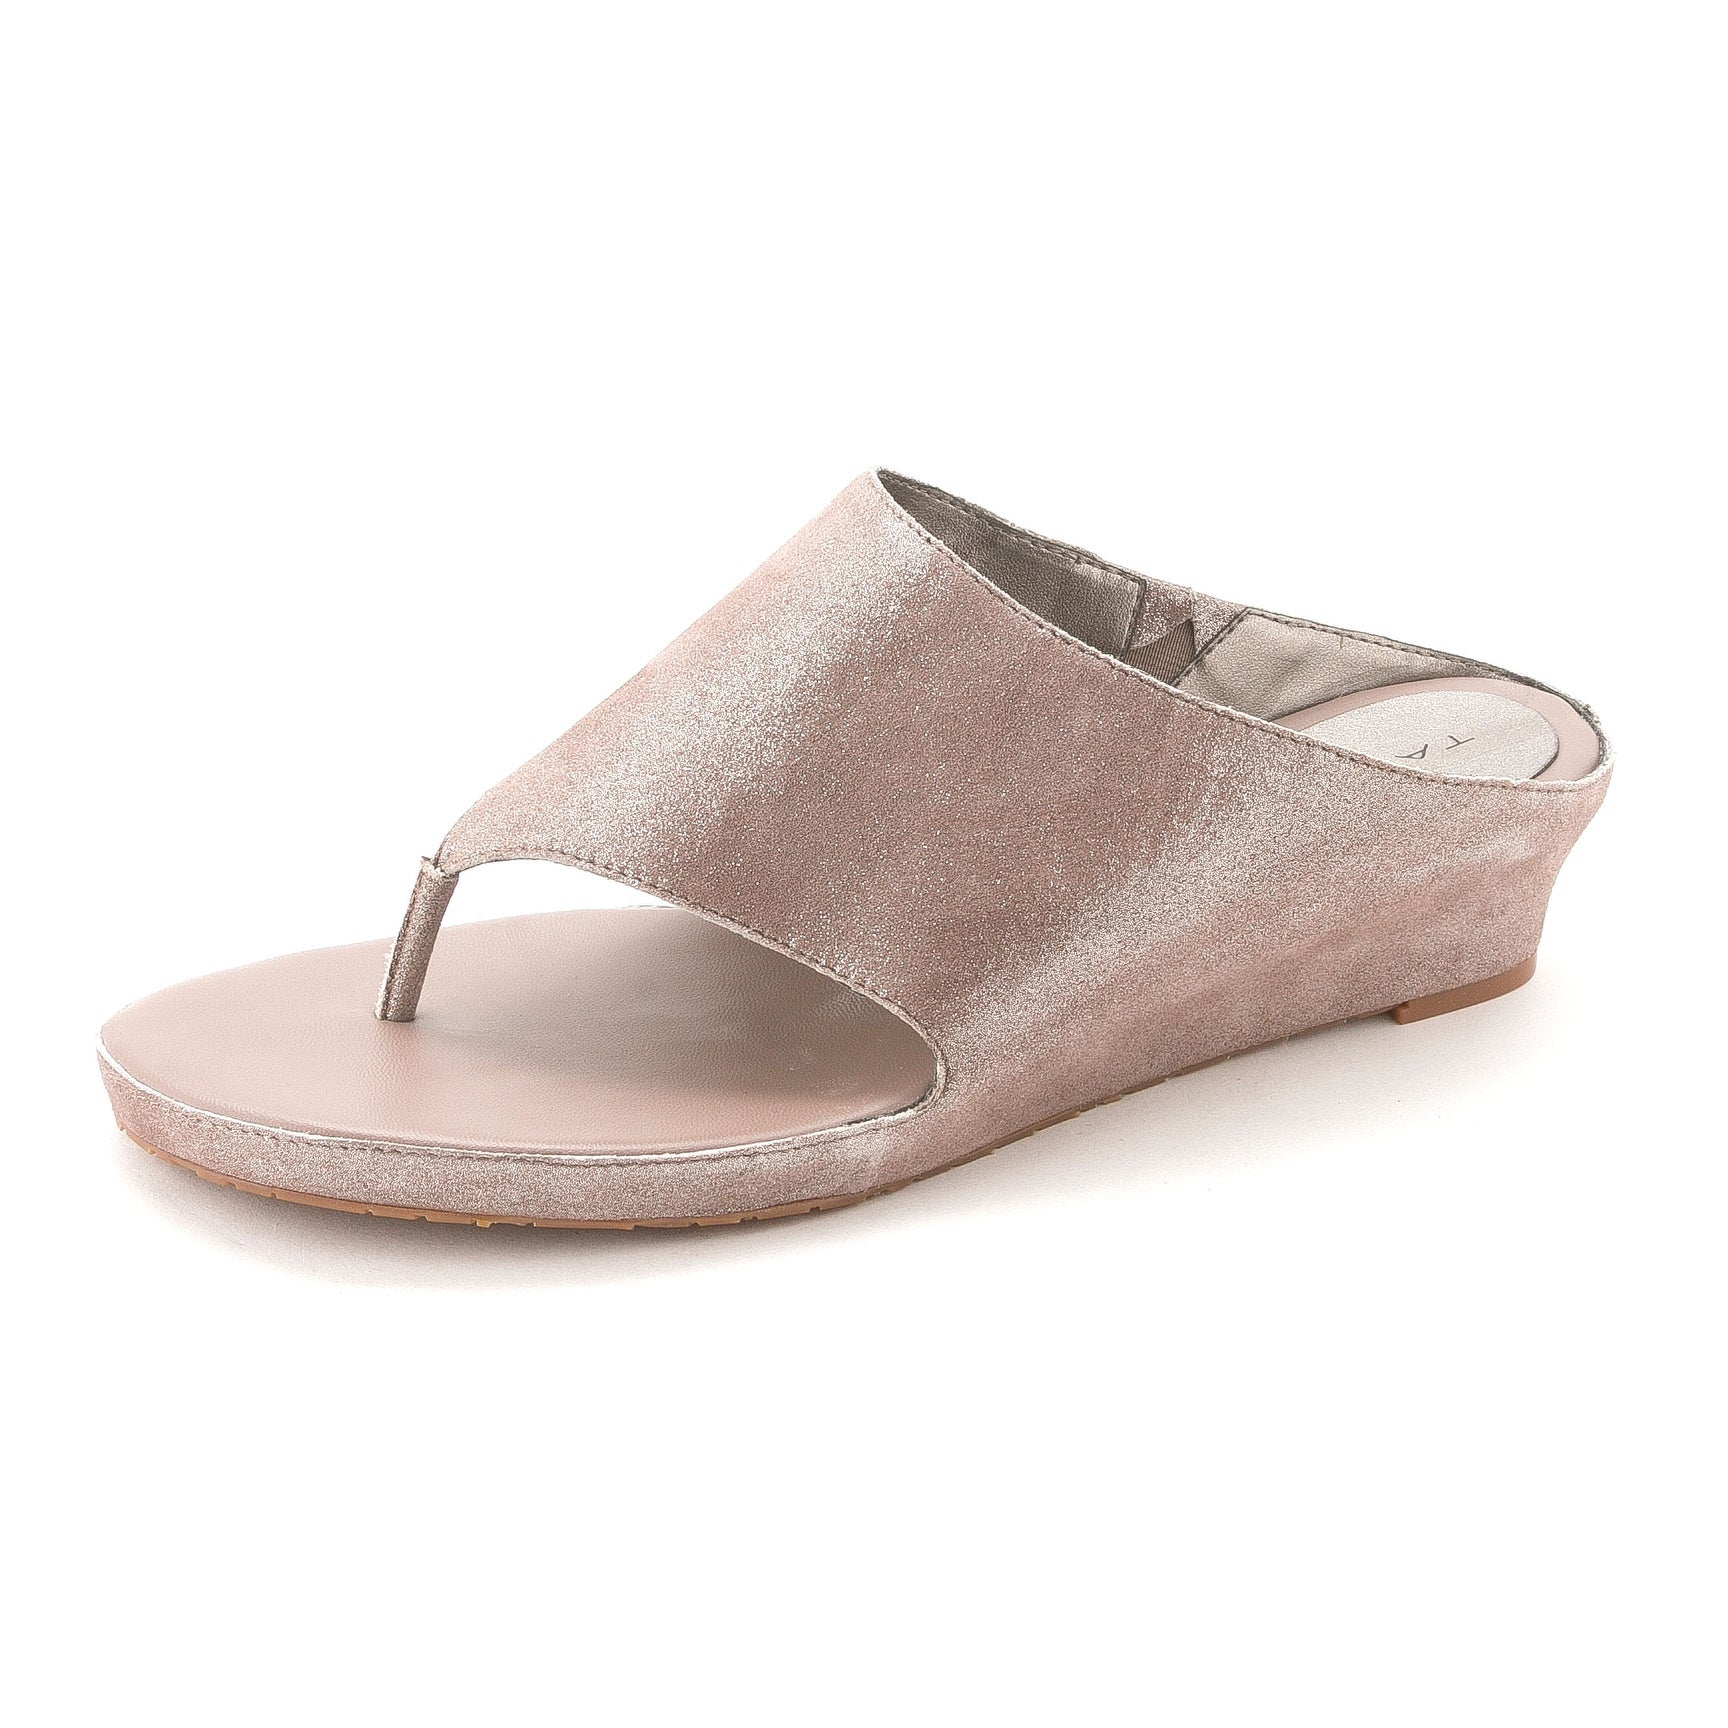 4cb350c892ea Shop Tahari Women s Mindy Thong Strap Wedge Sandal - Free Shipping On  Orders Over  45 - Overstock - 15054525